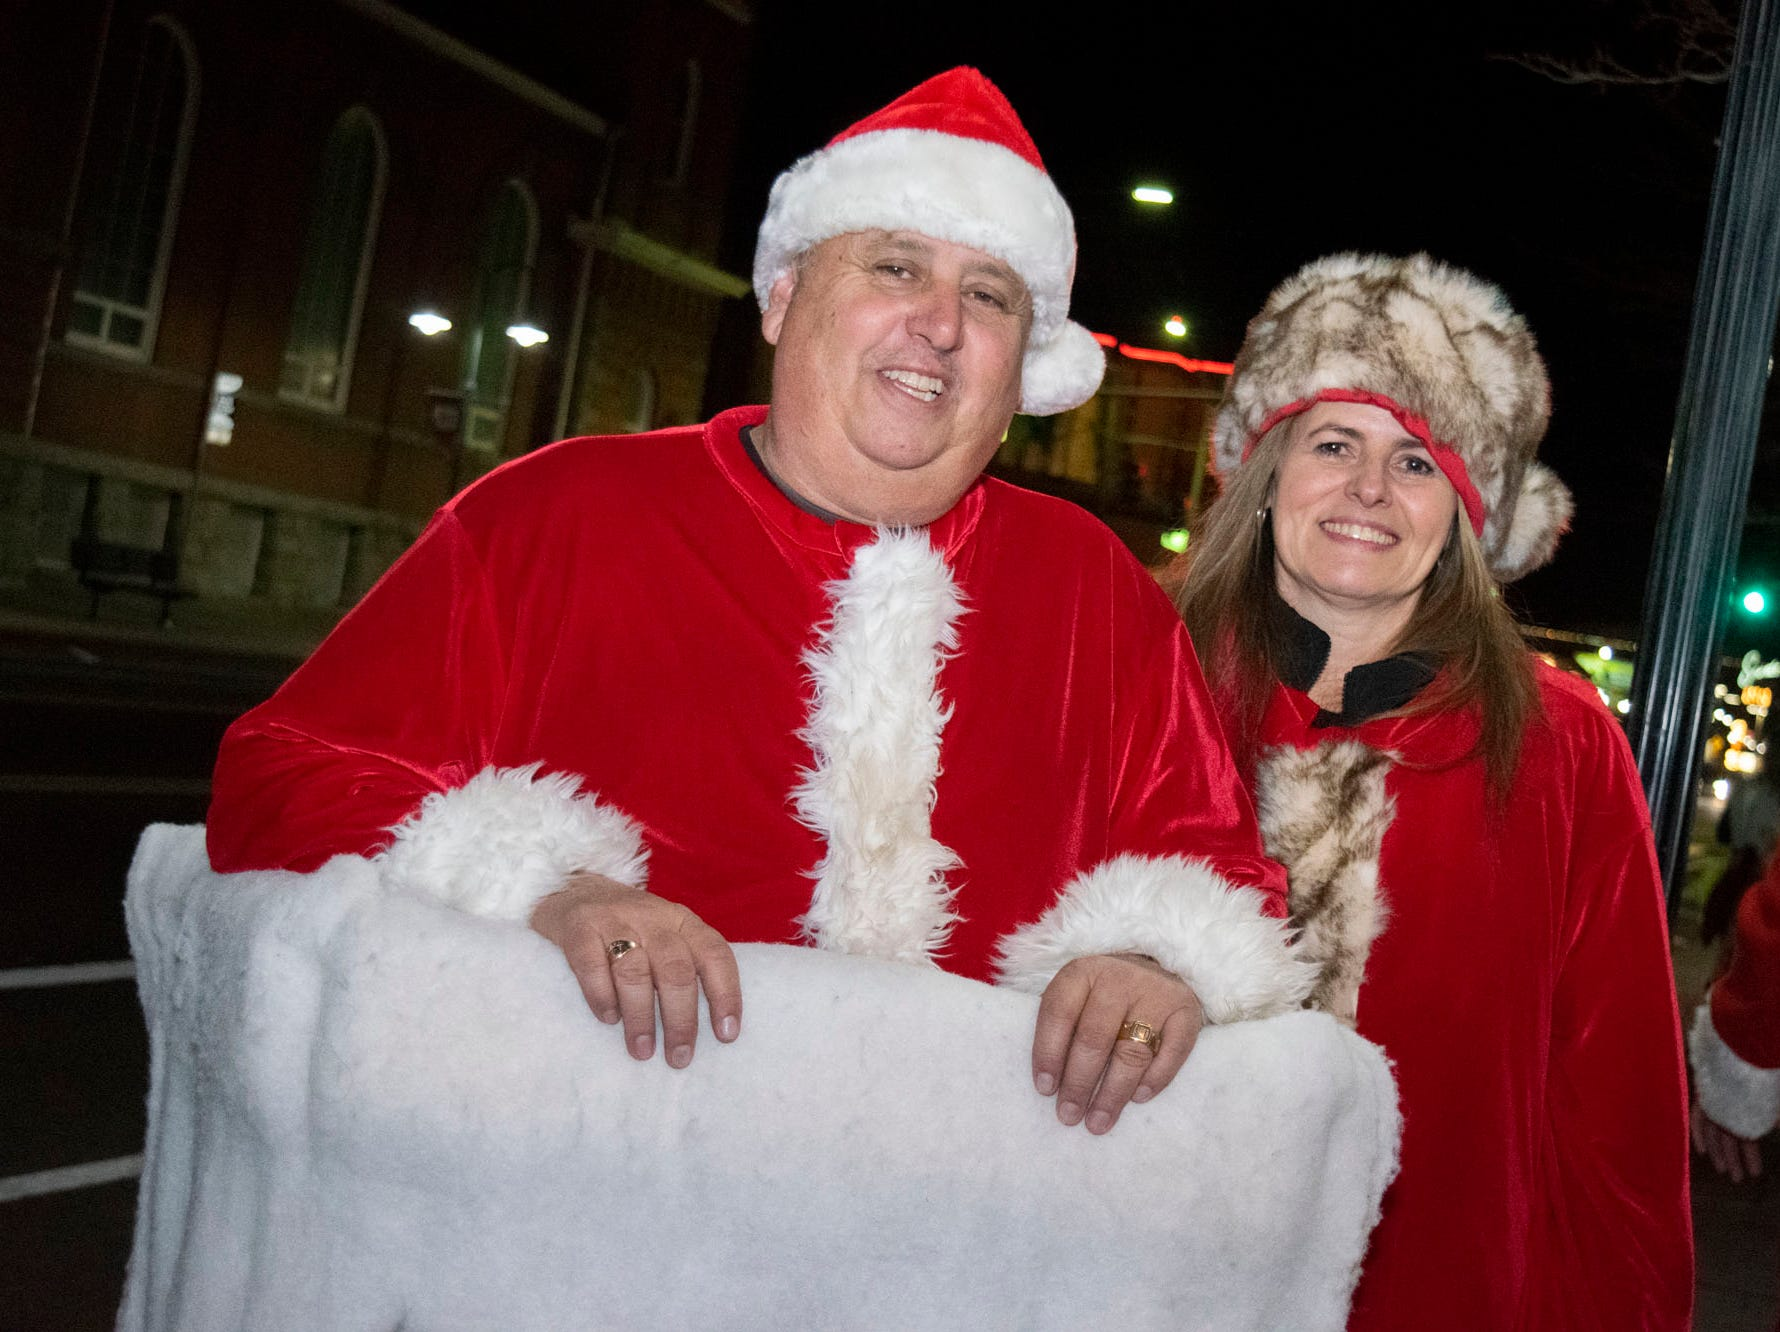 Barry O'Sullivan and Rachel Martinez get merry at the Reno Santa Pub Crawl on Saturday, Dec. 15, 2018.